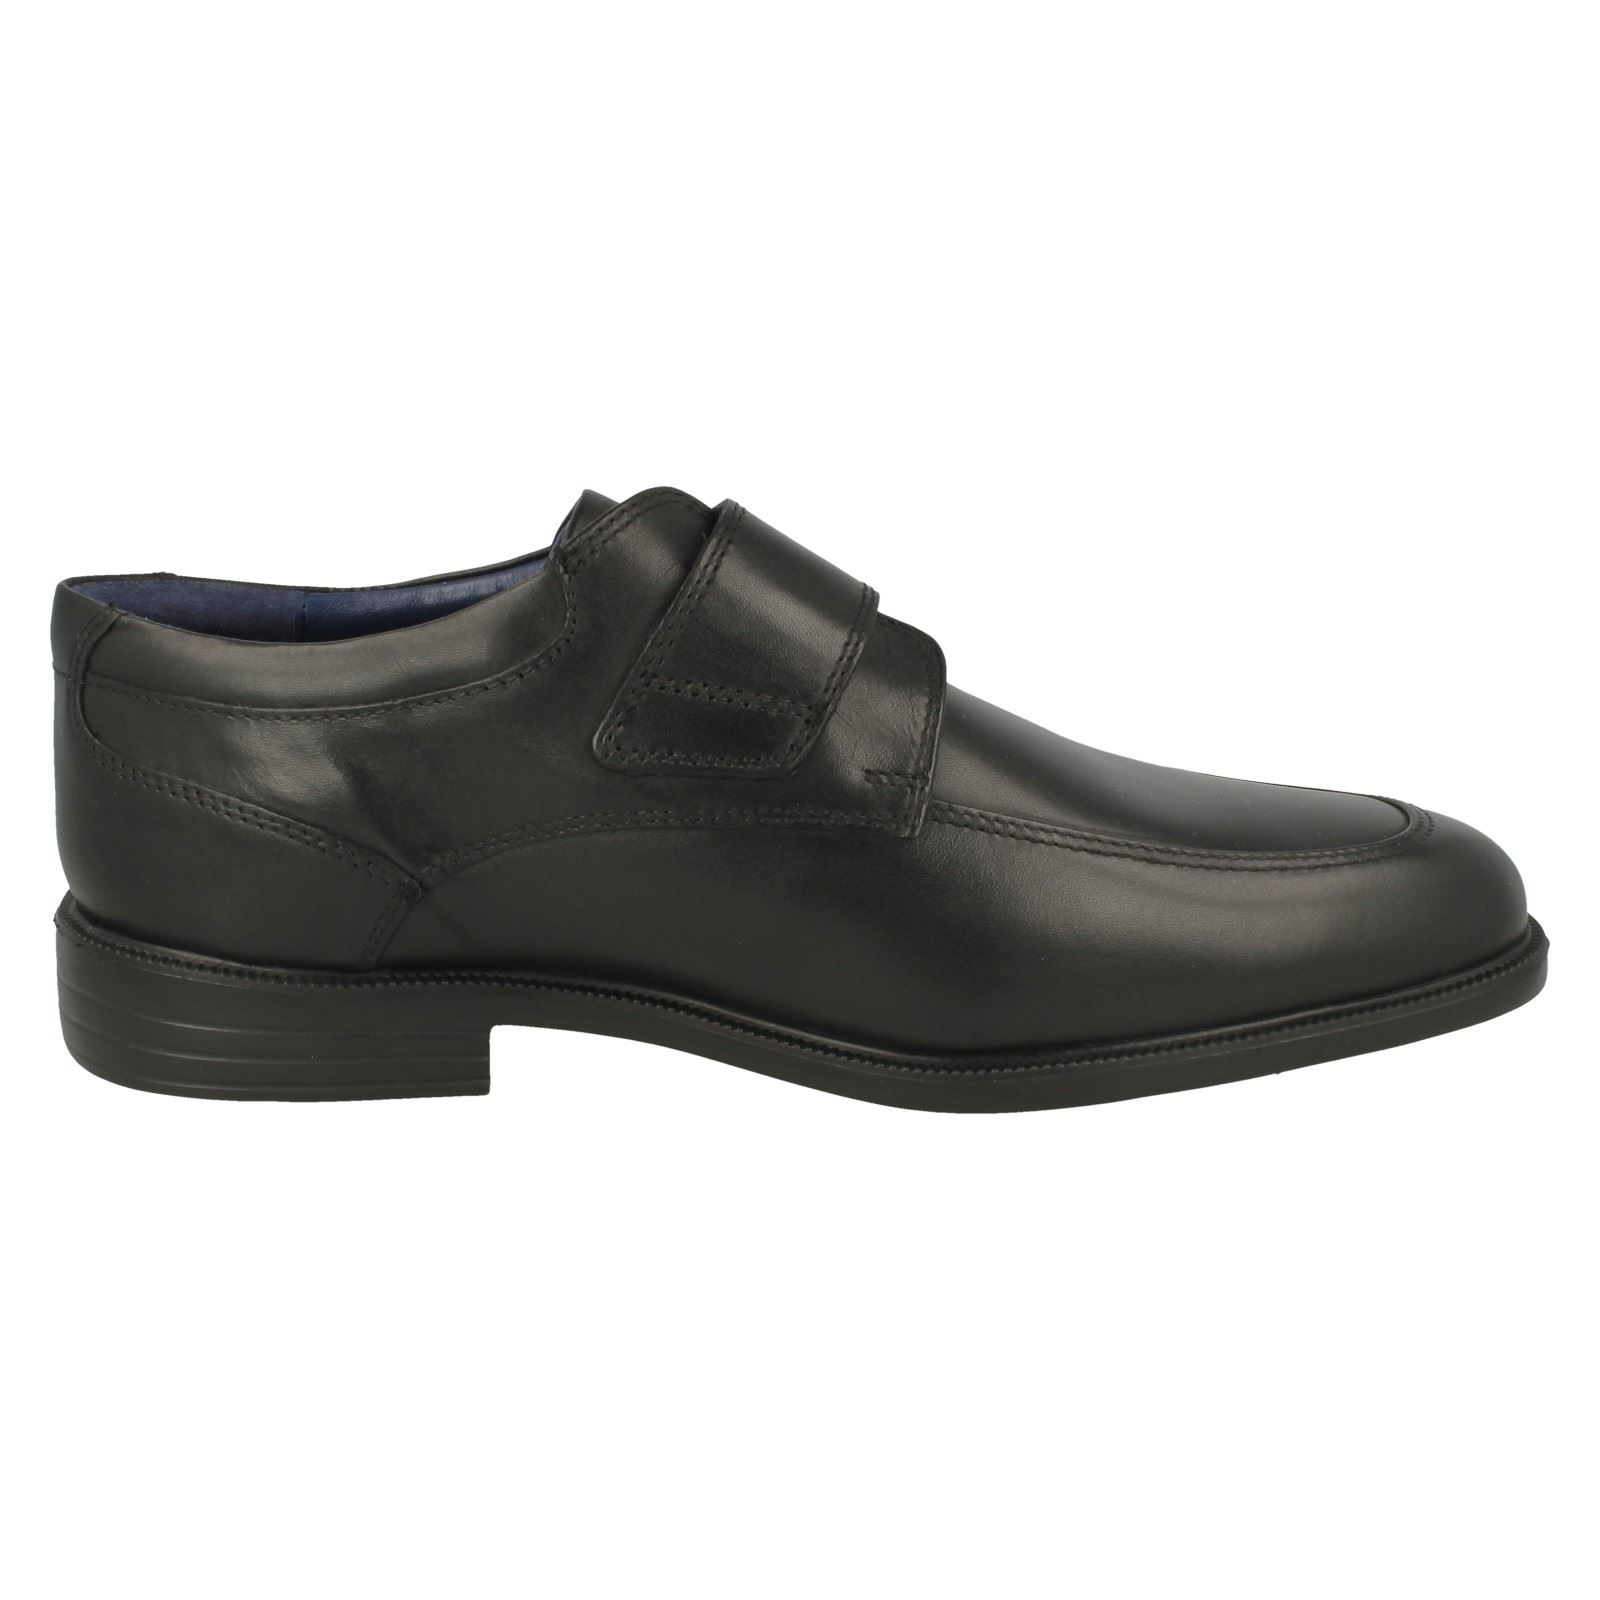 Mens Padders Formal Hook & Loop Fastening Shoes Brent